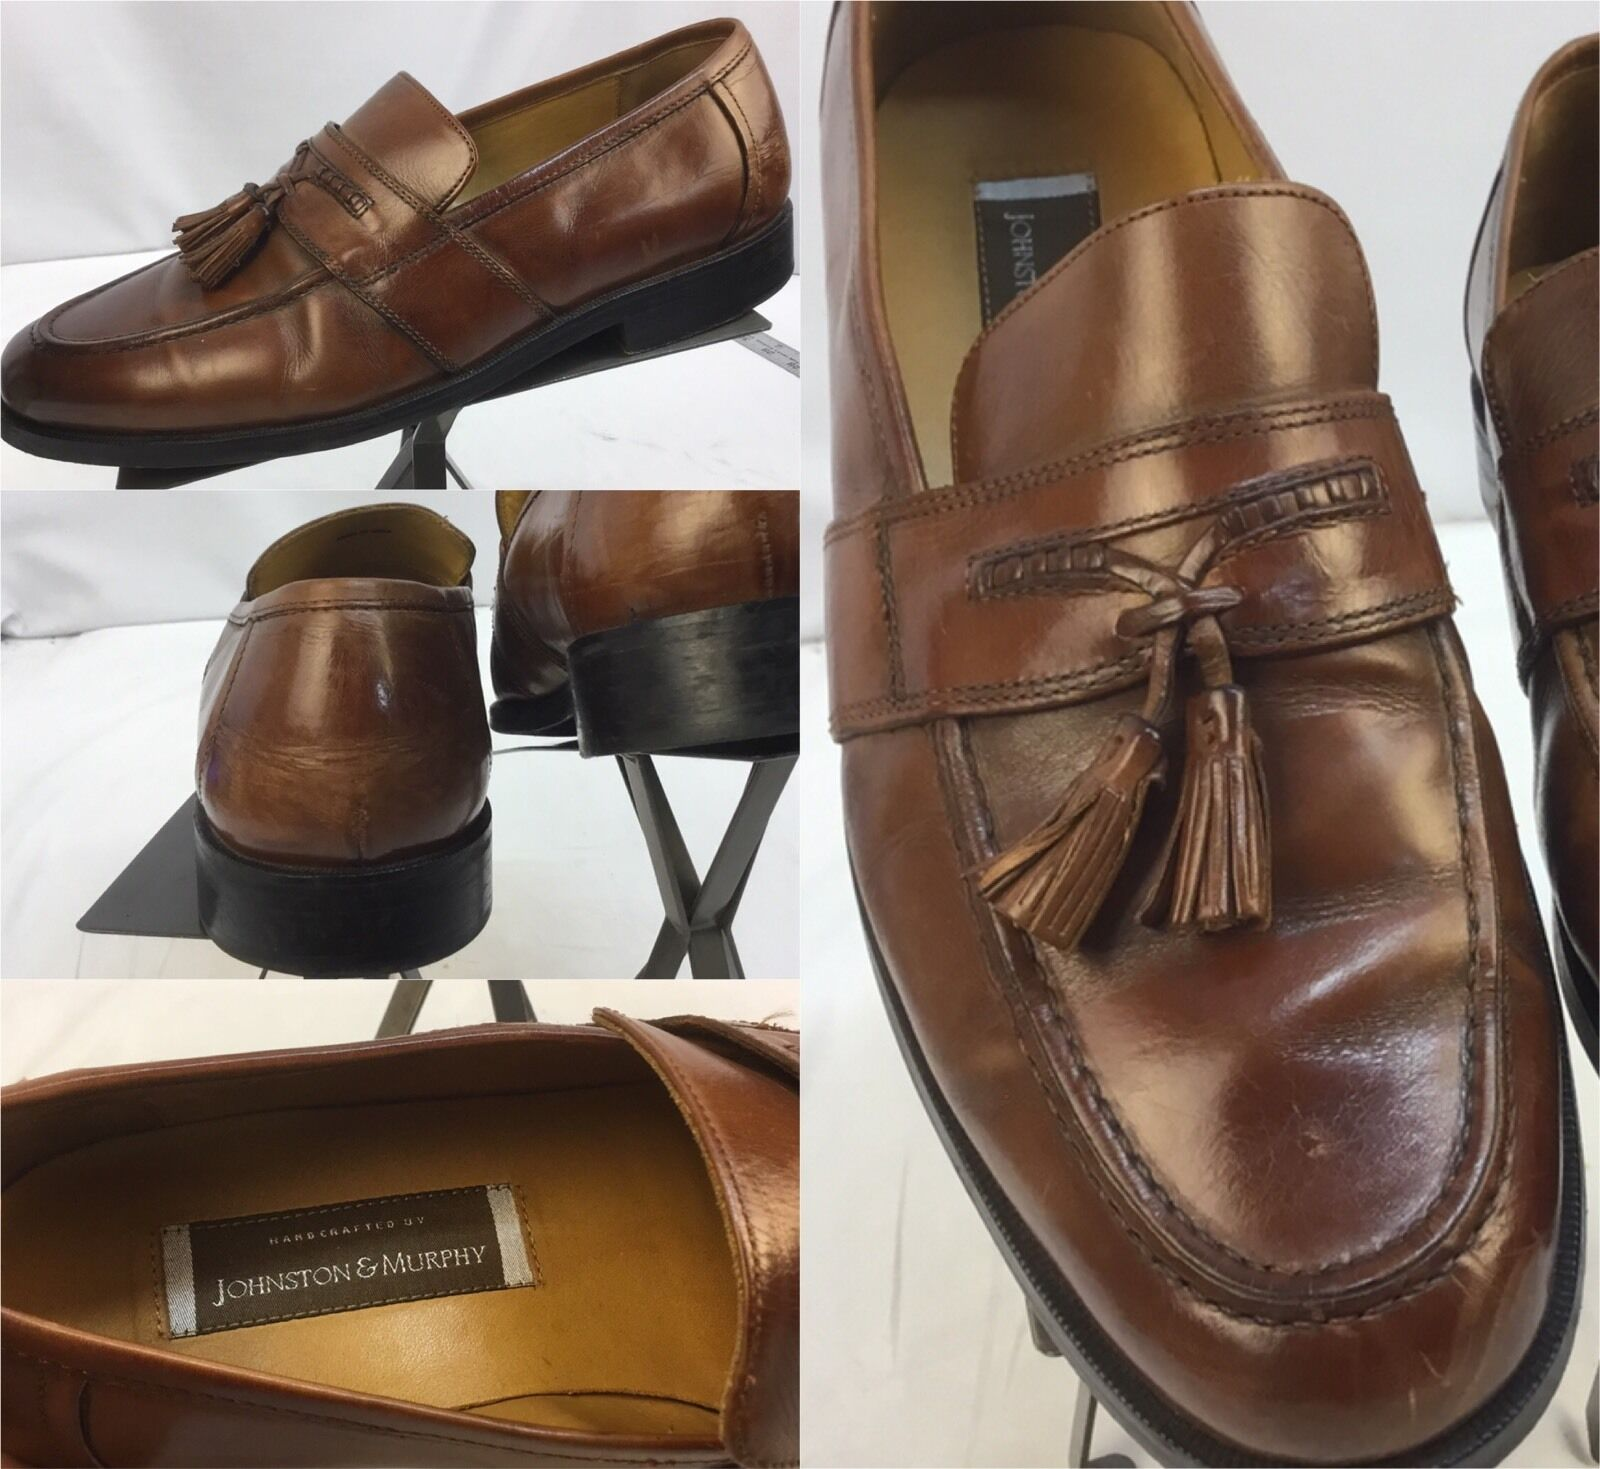 Johnston Murphy M Dress Shoes Sz 10.5 M Murphy Brown Loafers Tassels India EUC YGI M da01fb